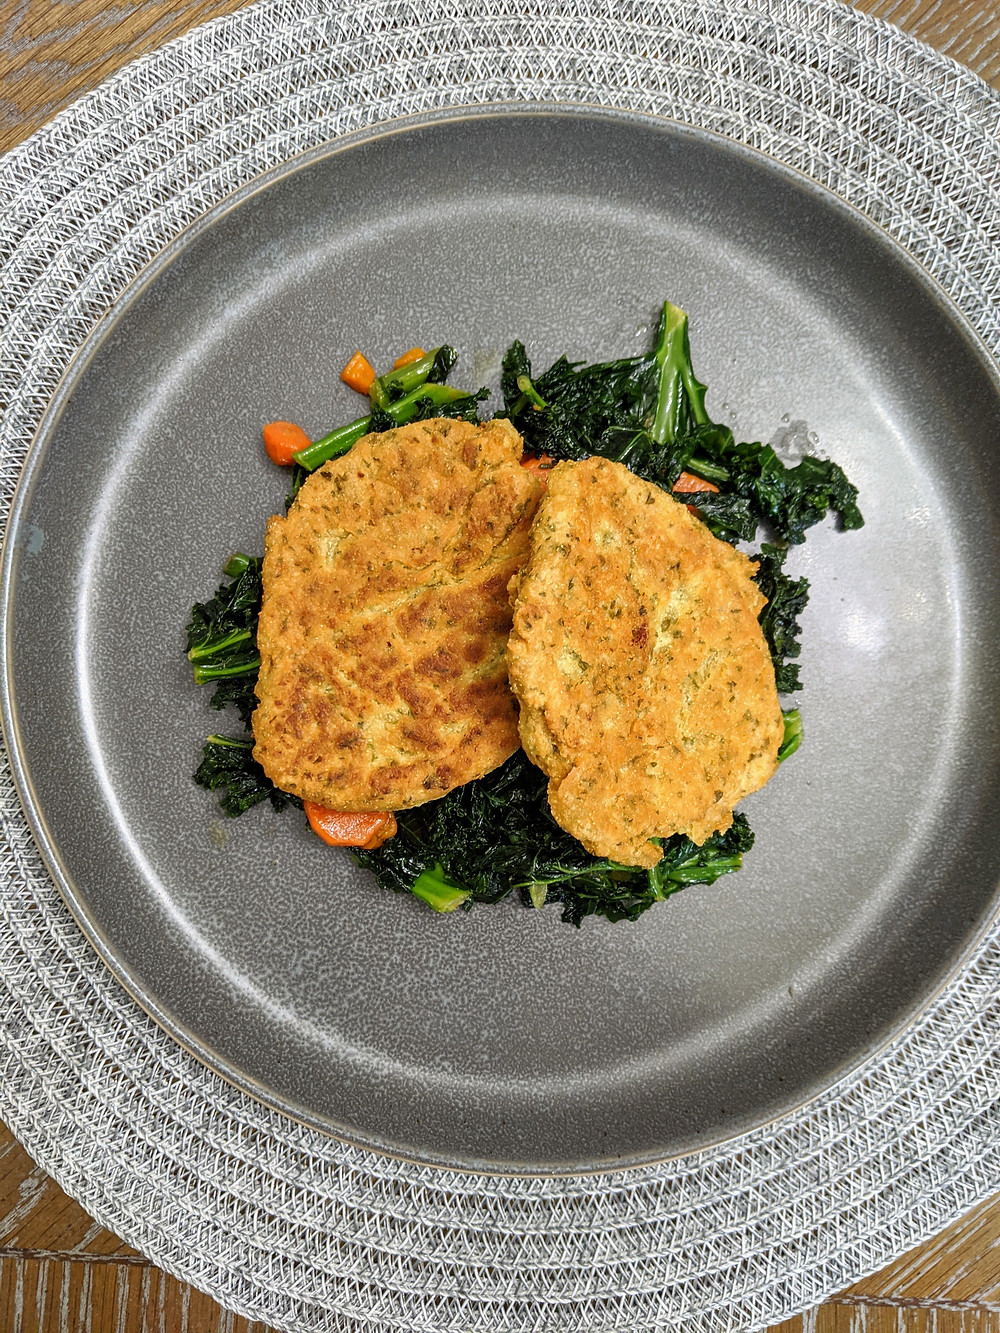 Easy Chickpea Patties - Amanda MacGregor